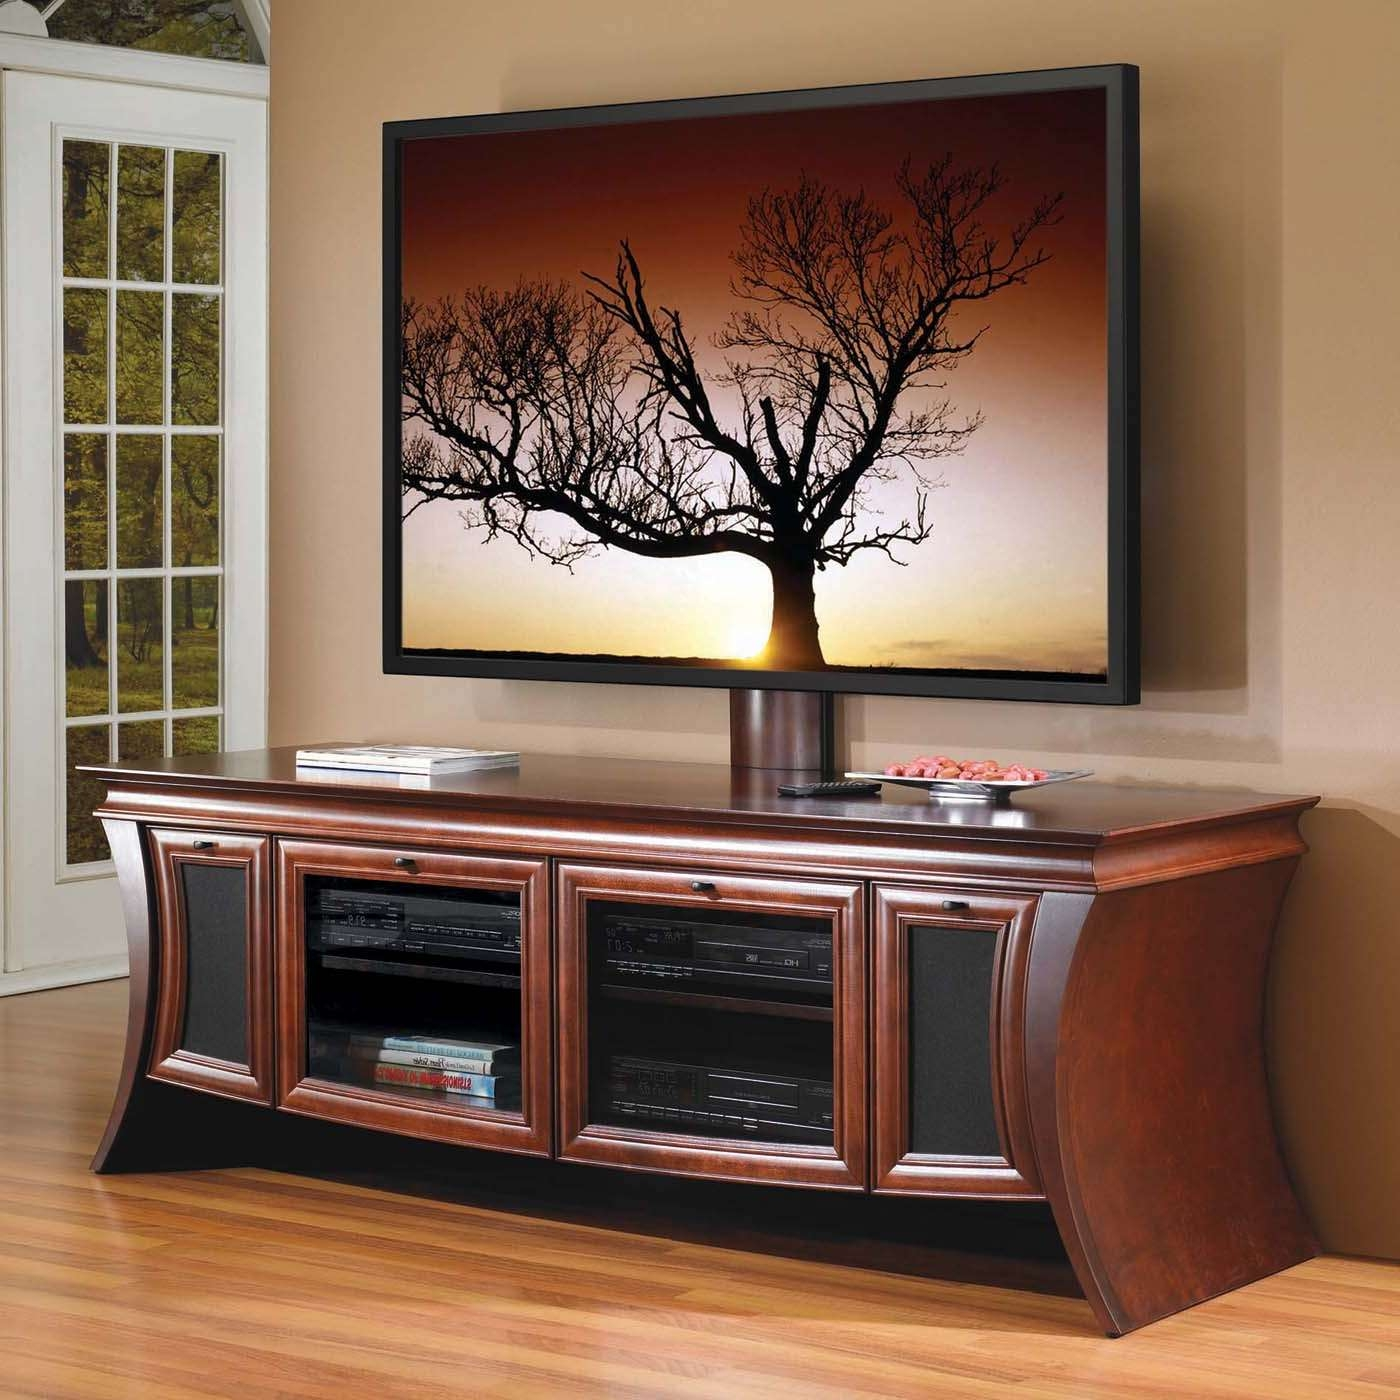 Furnitures Media Stands For Flat Screen Tvs Furniture The Best Pertaining To Glass Corner Tv Stands For Flat Screen Tvs (View 10 of 15)